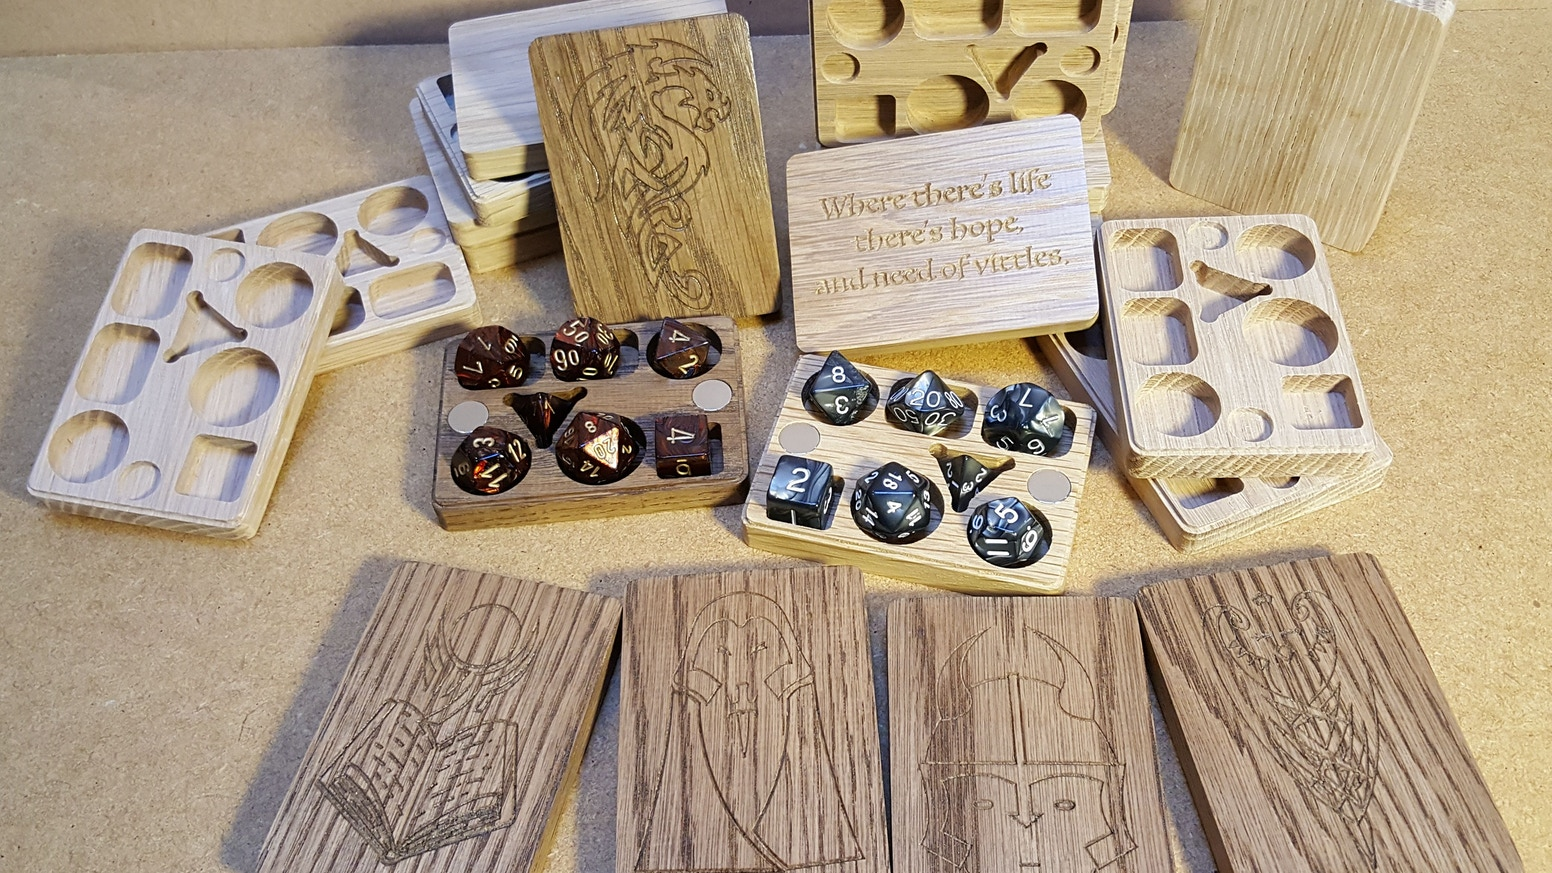 An awesome solid Oak dice box for your D&D polyhedral dice, held together with magnets with a finger ridge to make it easier to open. Kickstarter pledges have been fulfilled so we are ready to go!